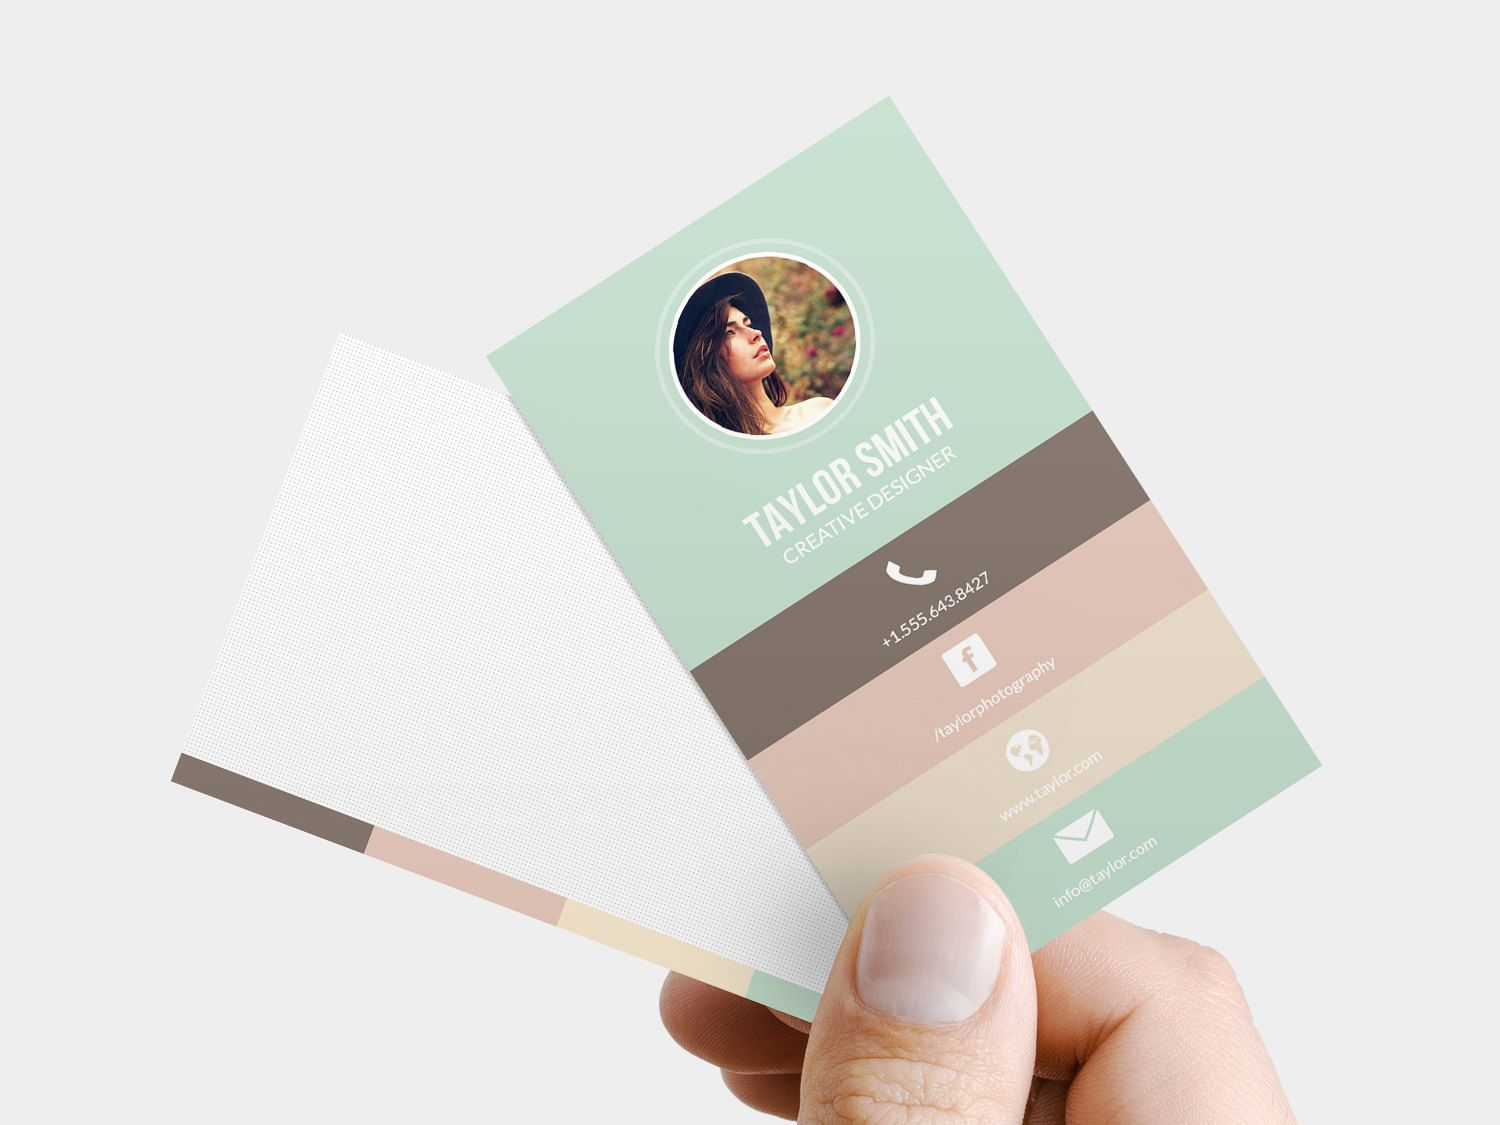 Business Card Template - Printable business card design, business ...